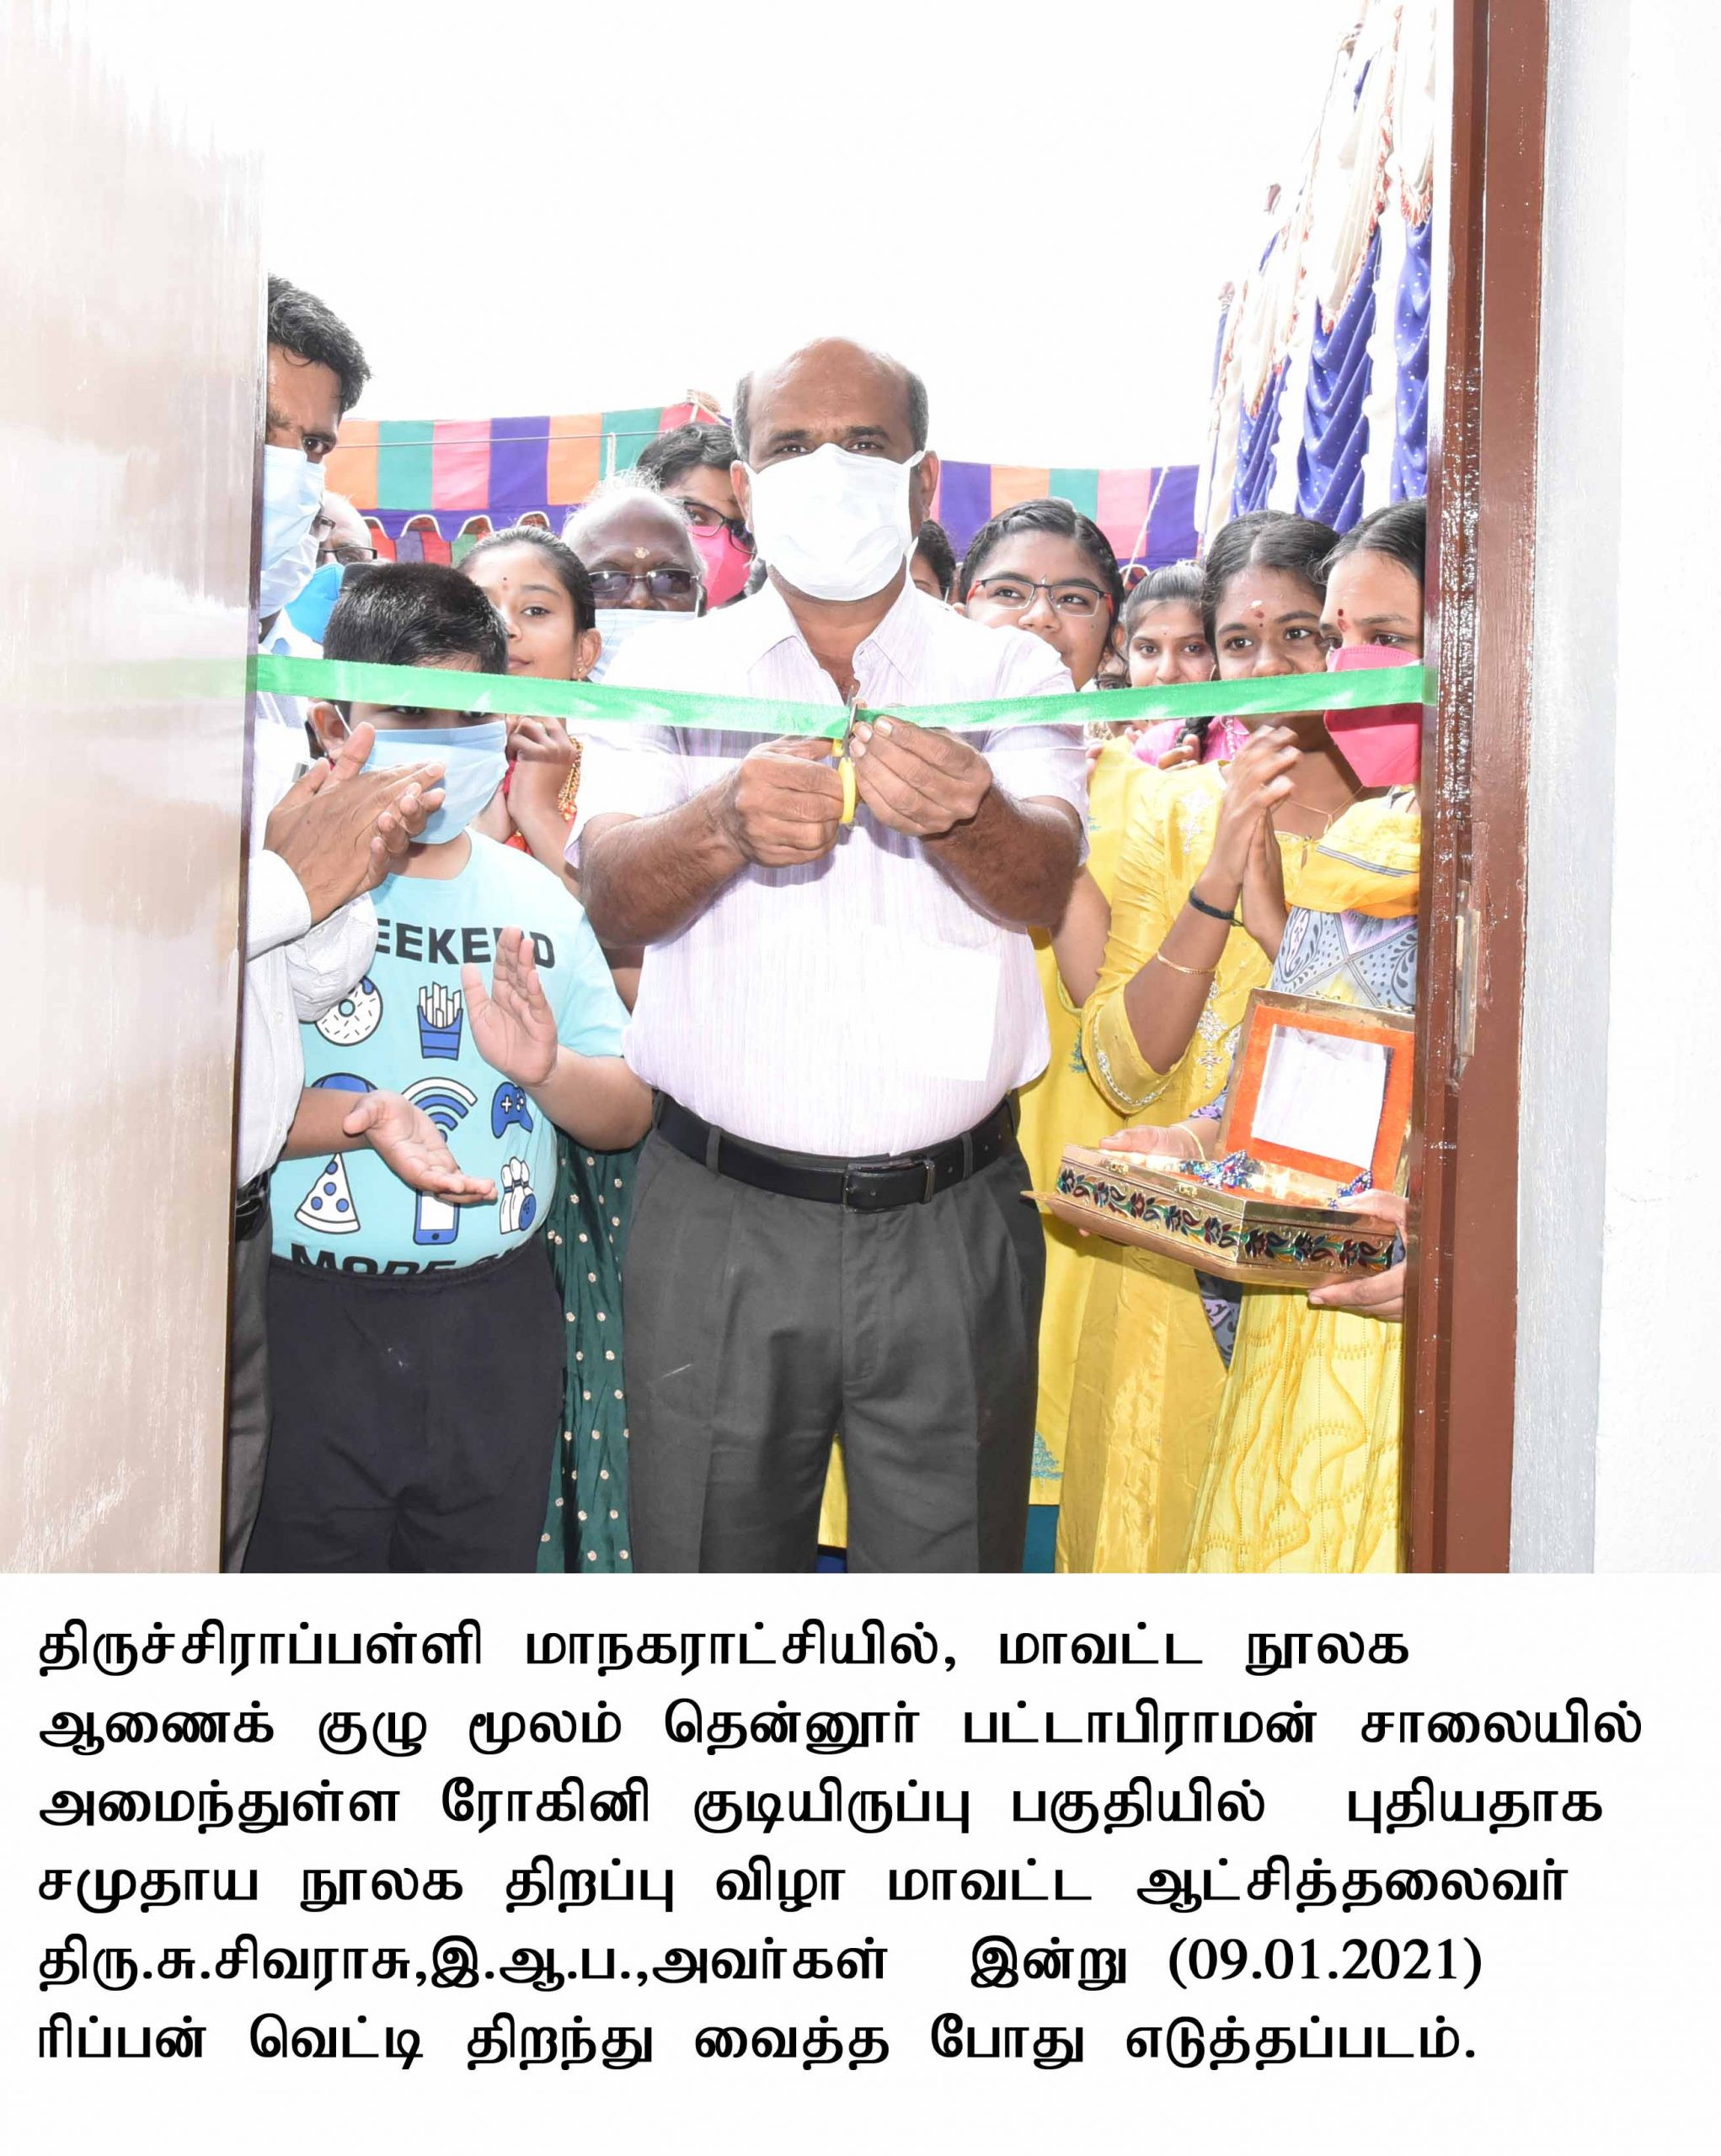 District Collector Inaugurated the community library on 09.01.2021